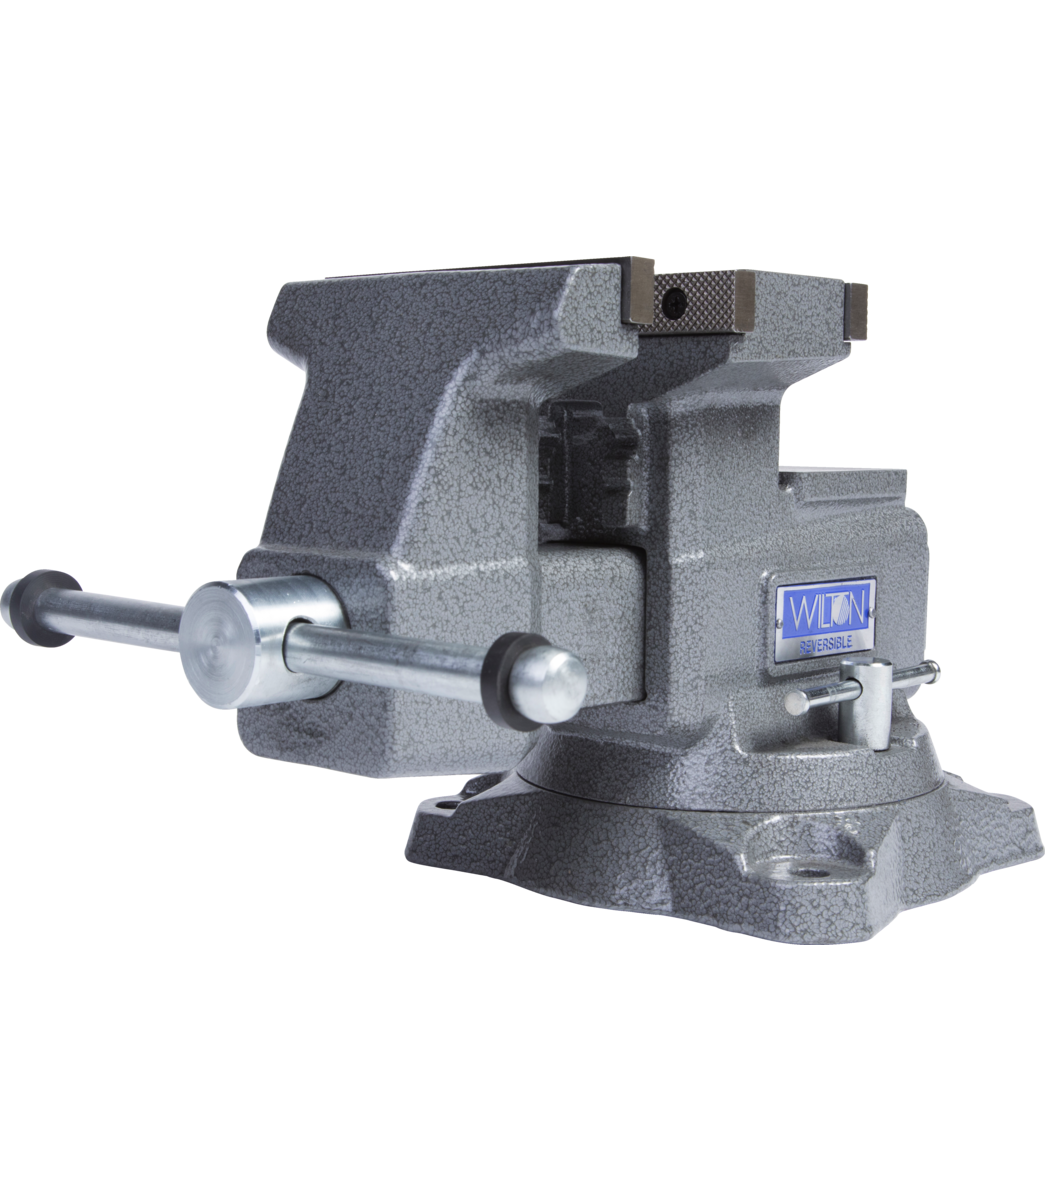 "Manual: Reversible Bench Vise 5-1/2"" Jaw Width with 360° Swivel Base"